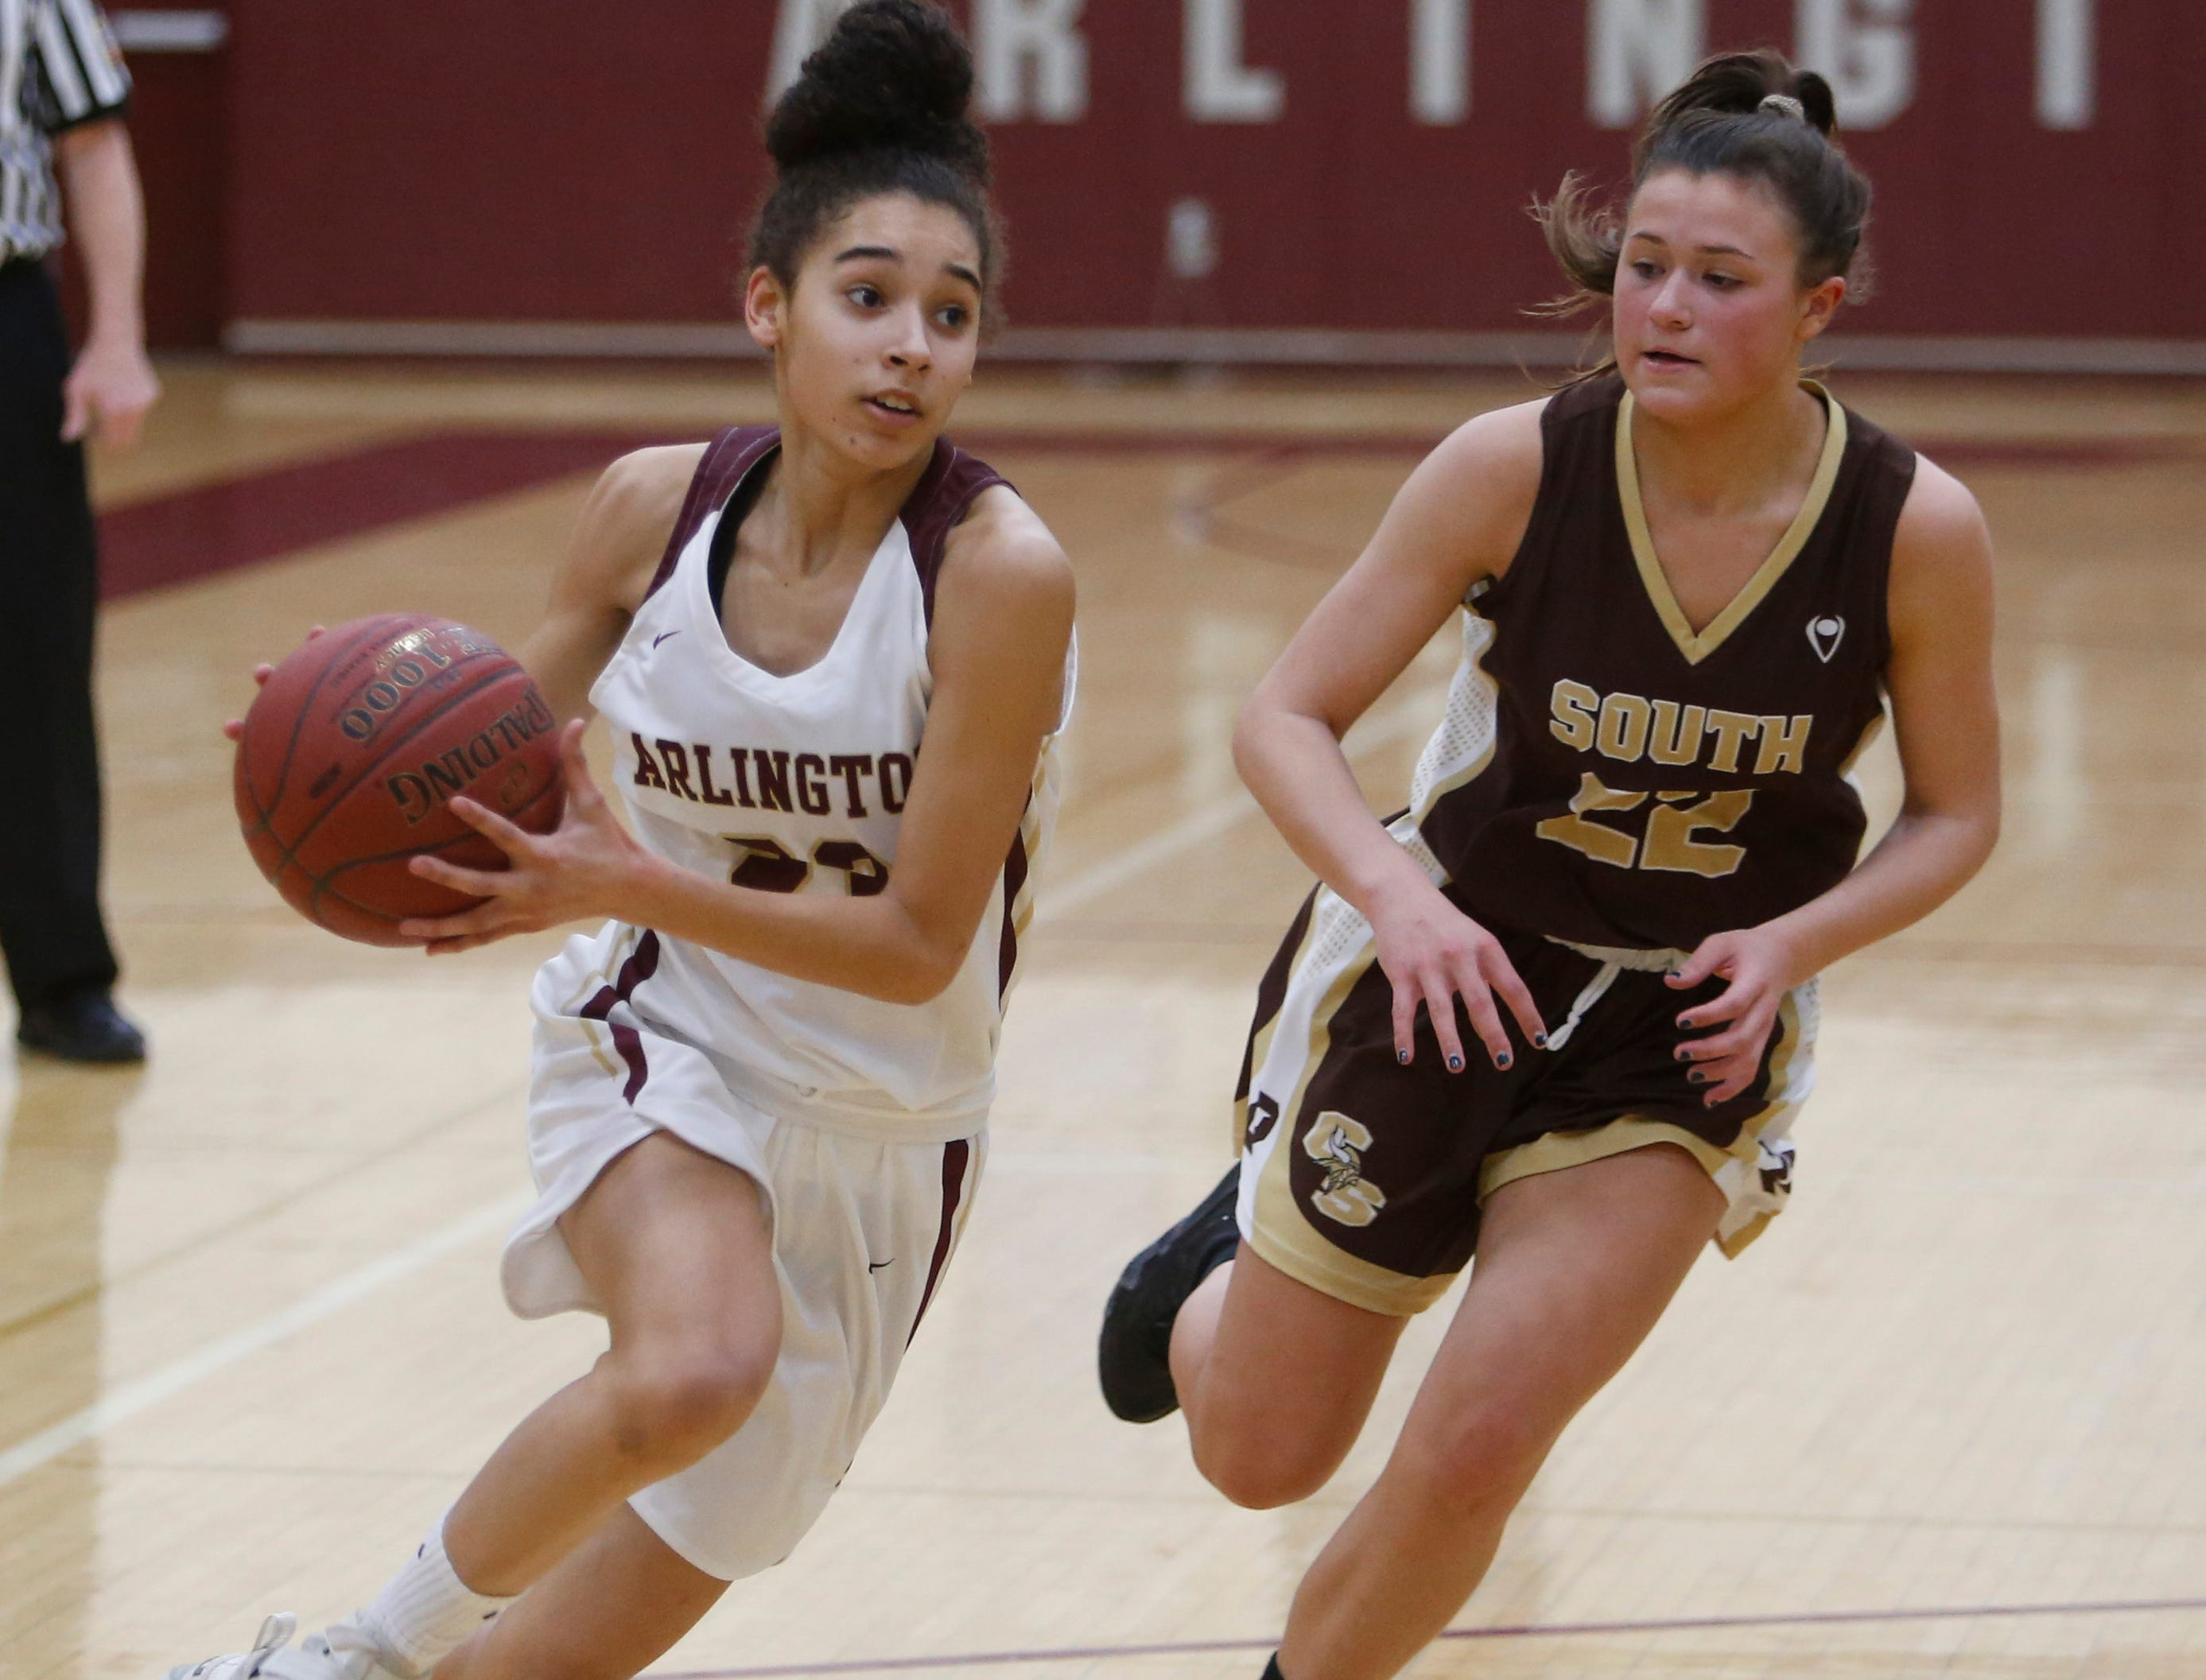 Action Thursday's playoff game between Arlington and Clarkstown South in Freedom Plains on February 21, 2019.